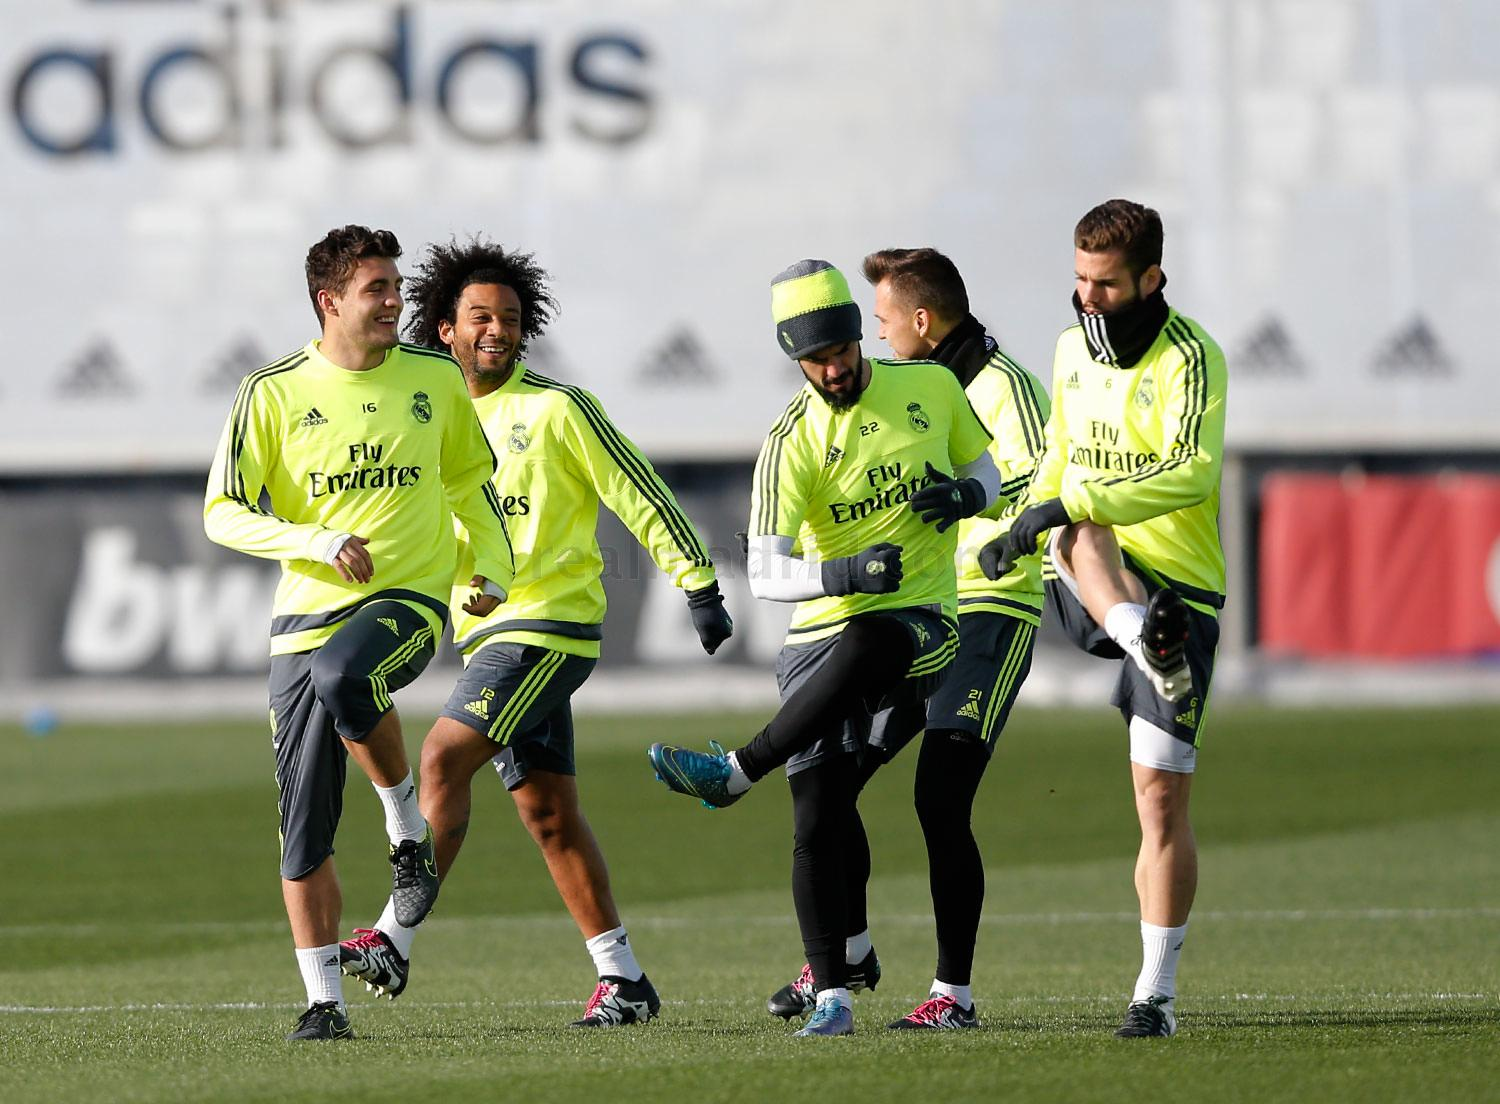 Real Madrid - Entrenamiento del Real Madrid - 06-01-2016